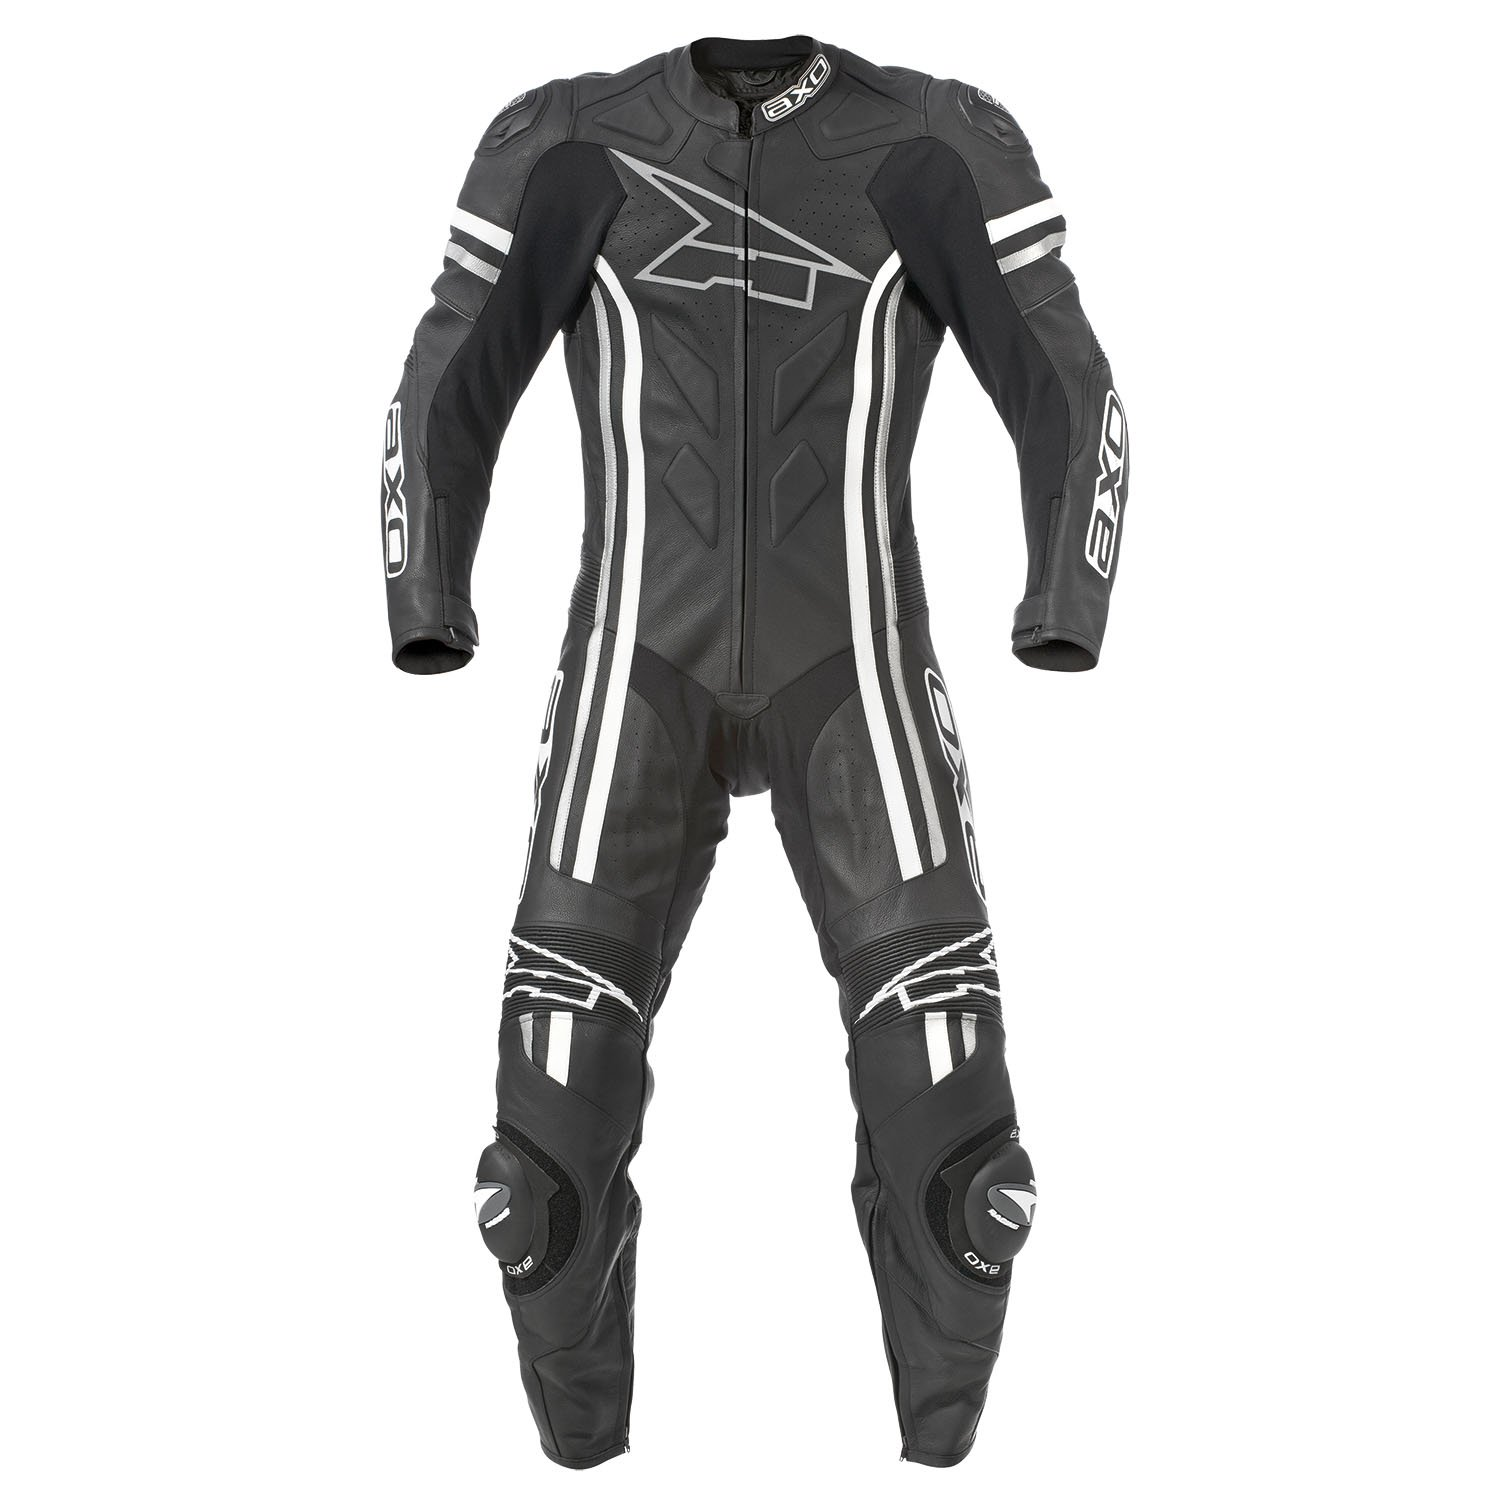 AXO Indy Men's Leather Suit (Black, Size EU 60/Size US 50)